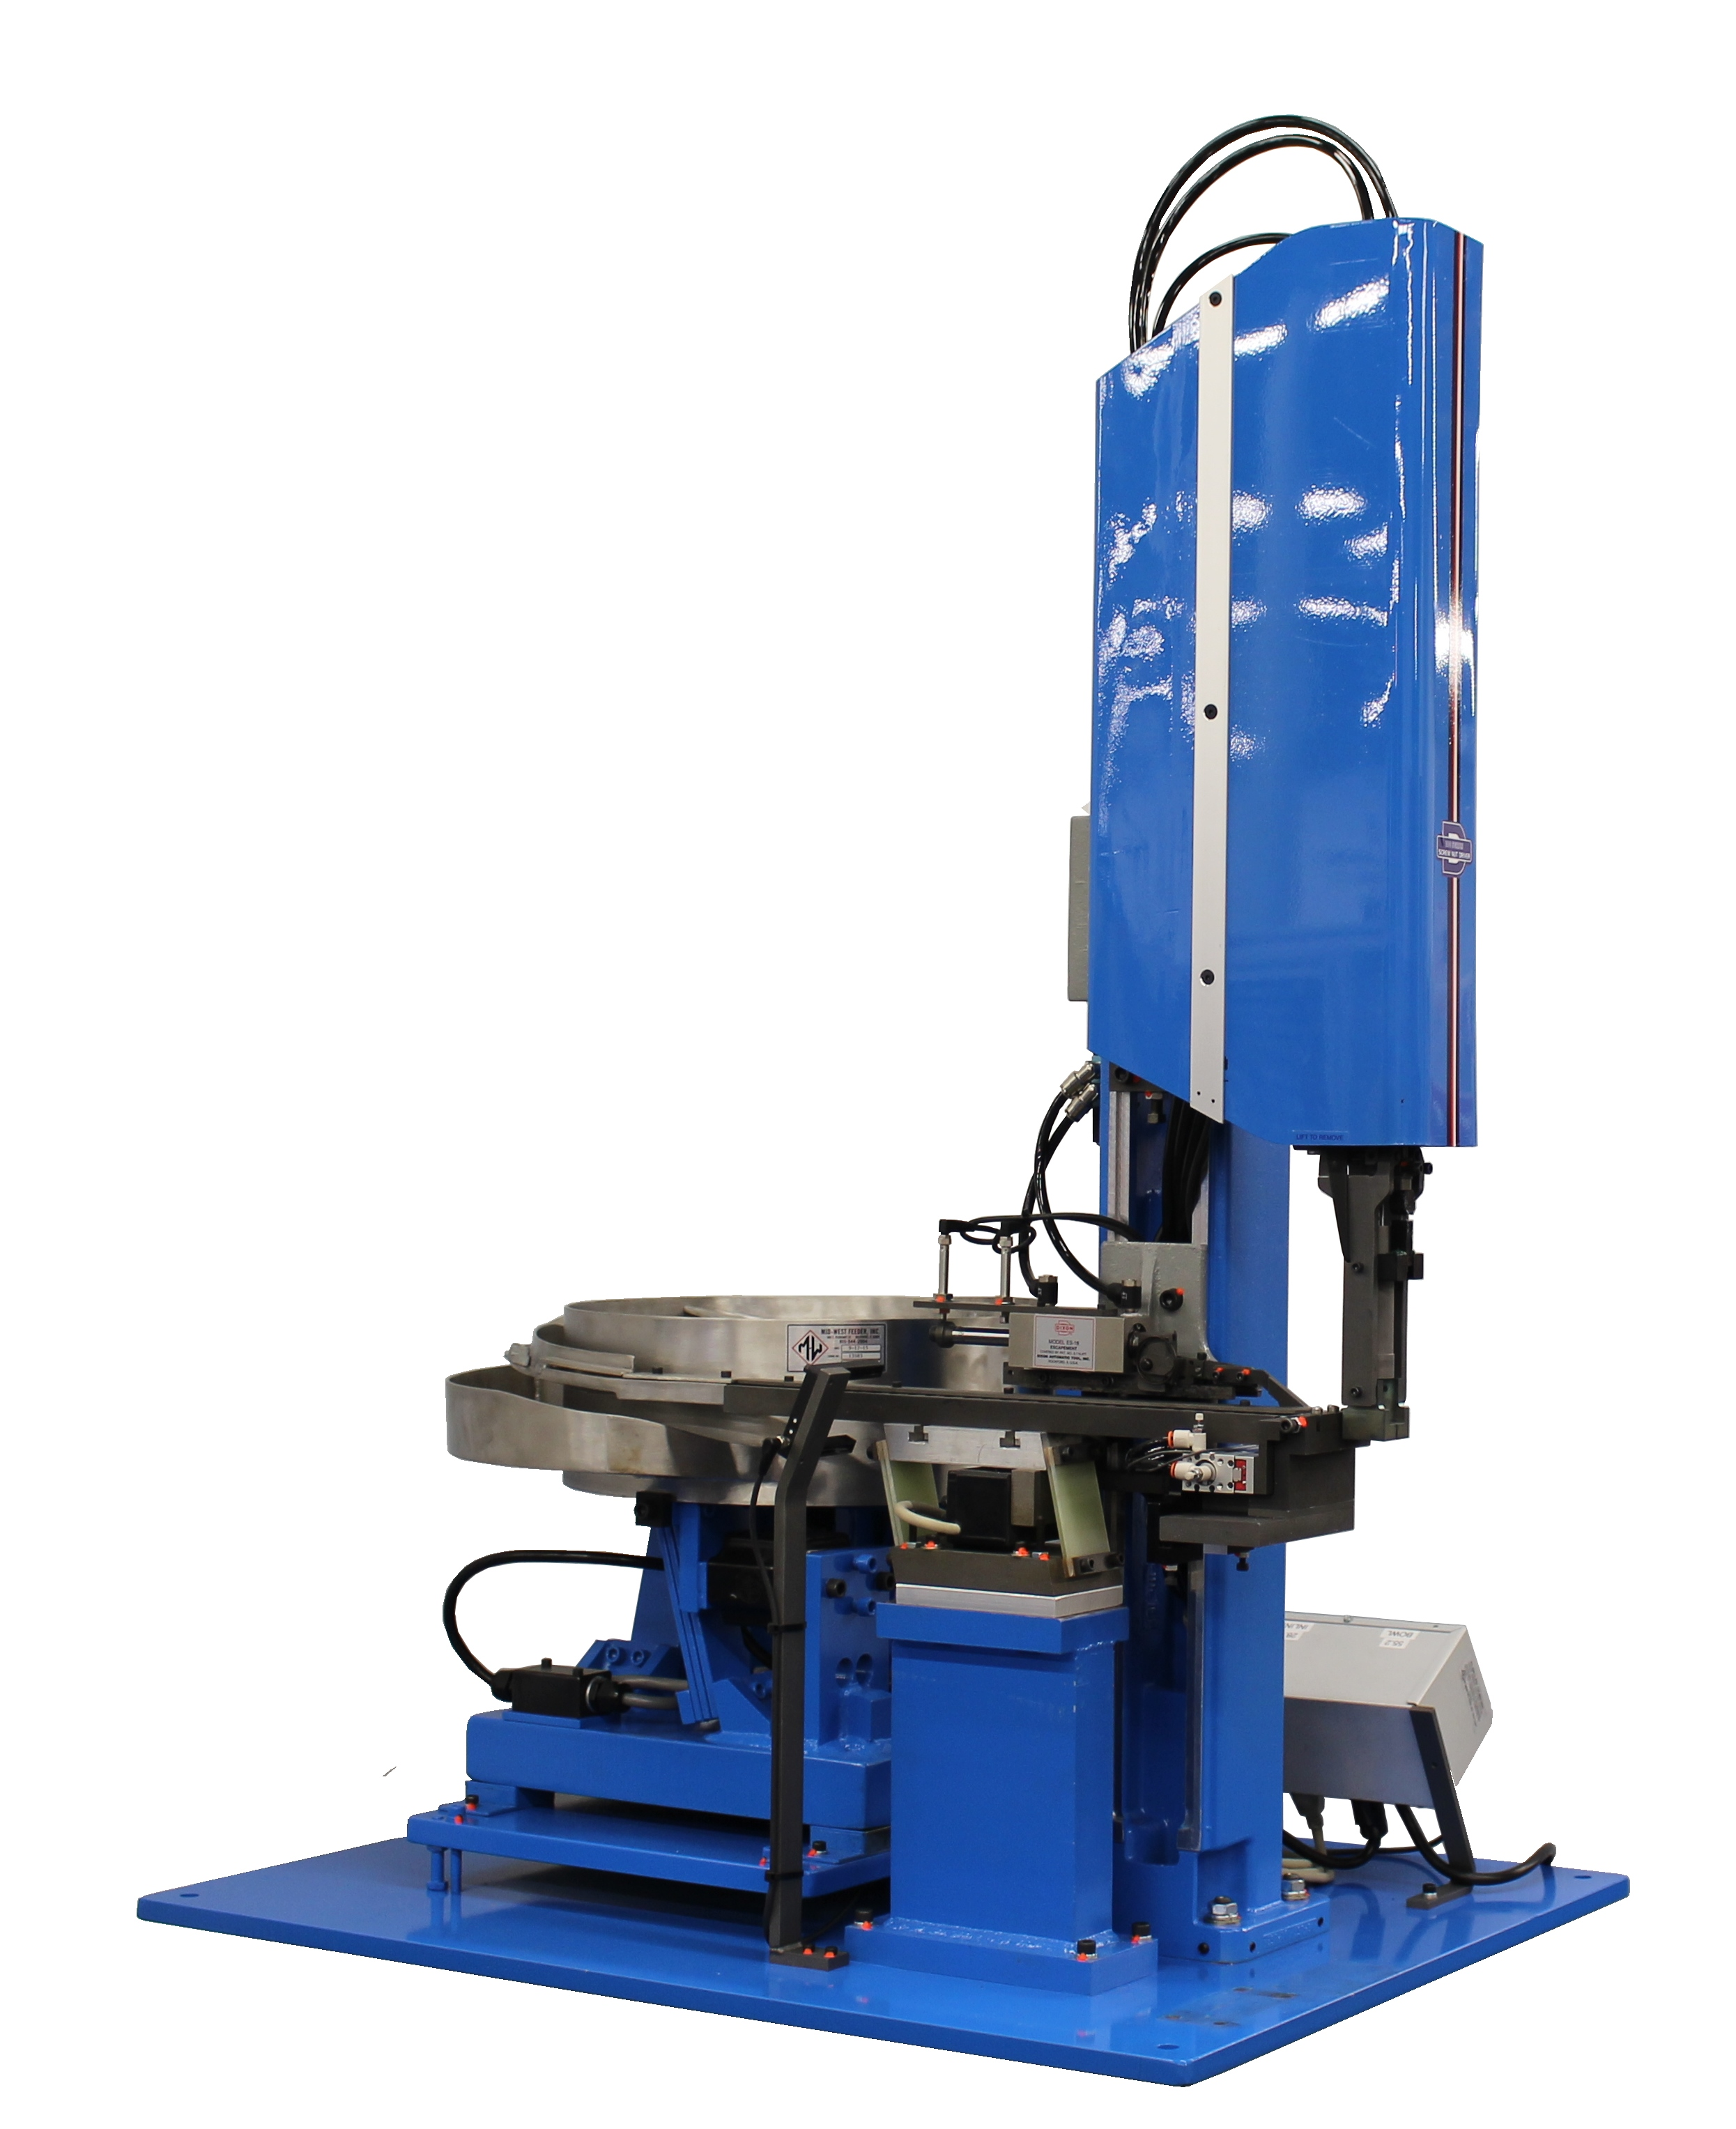 vibratory available largepreview feeder download bowl design publication for trap feeders pdf